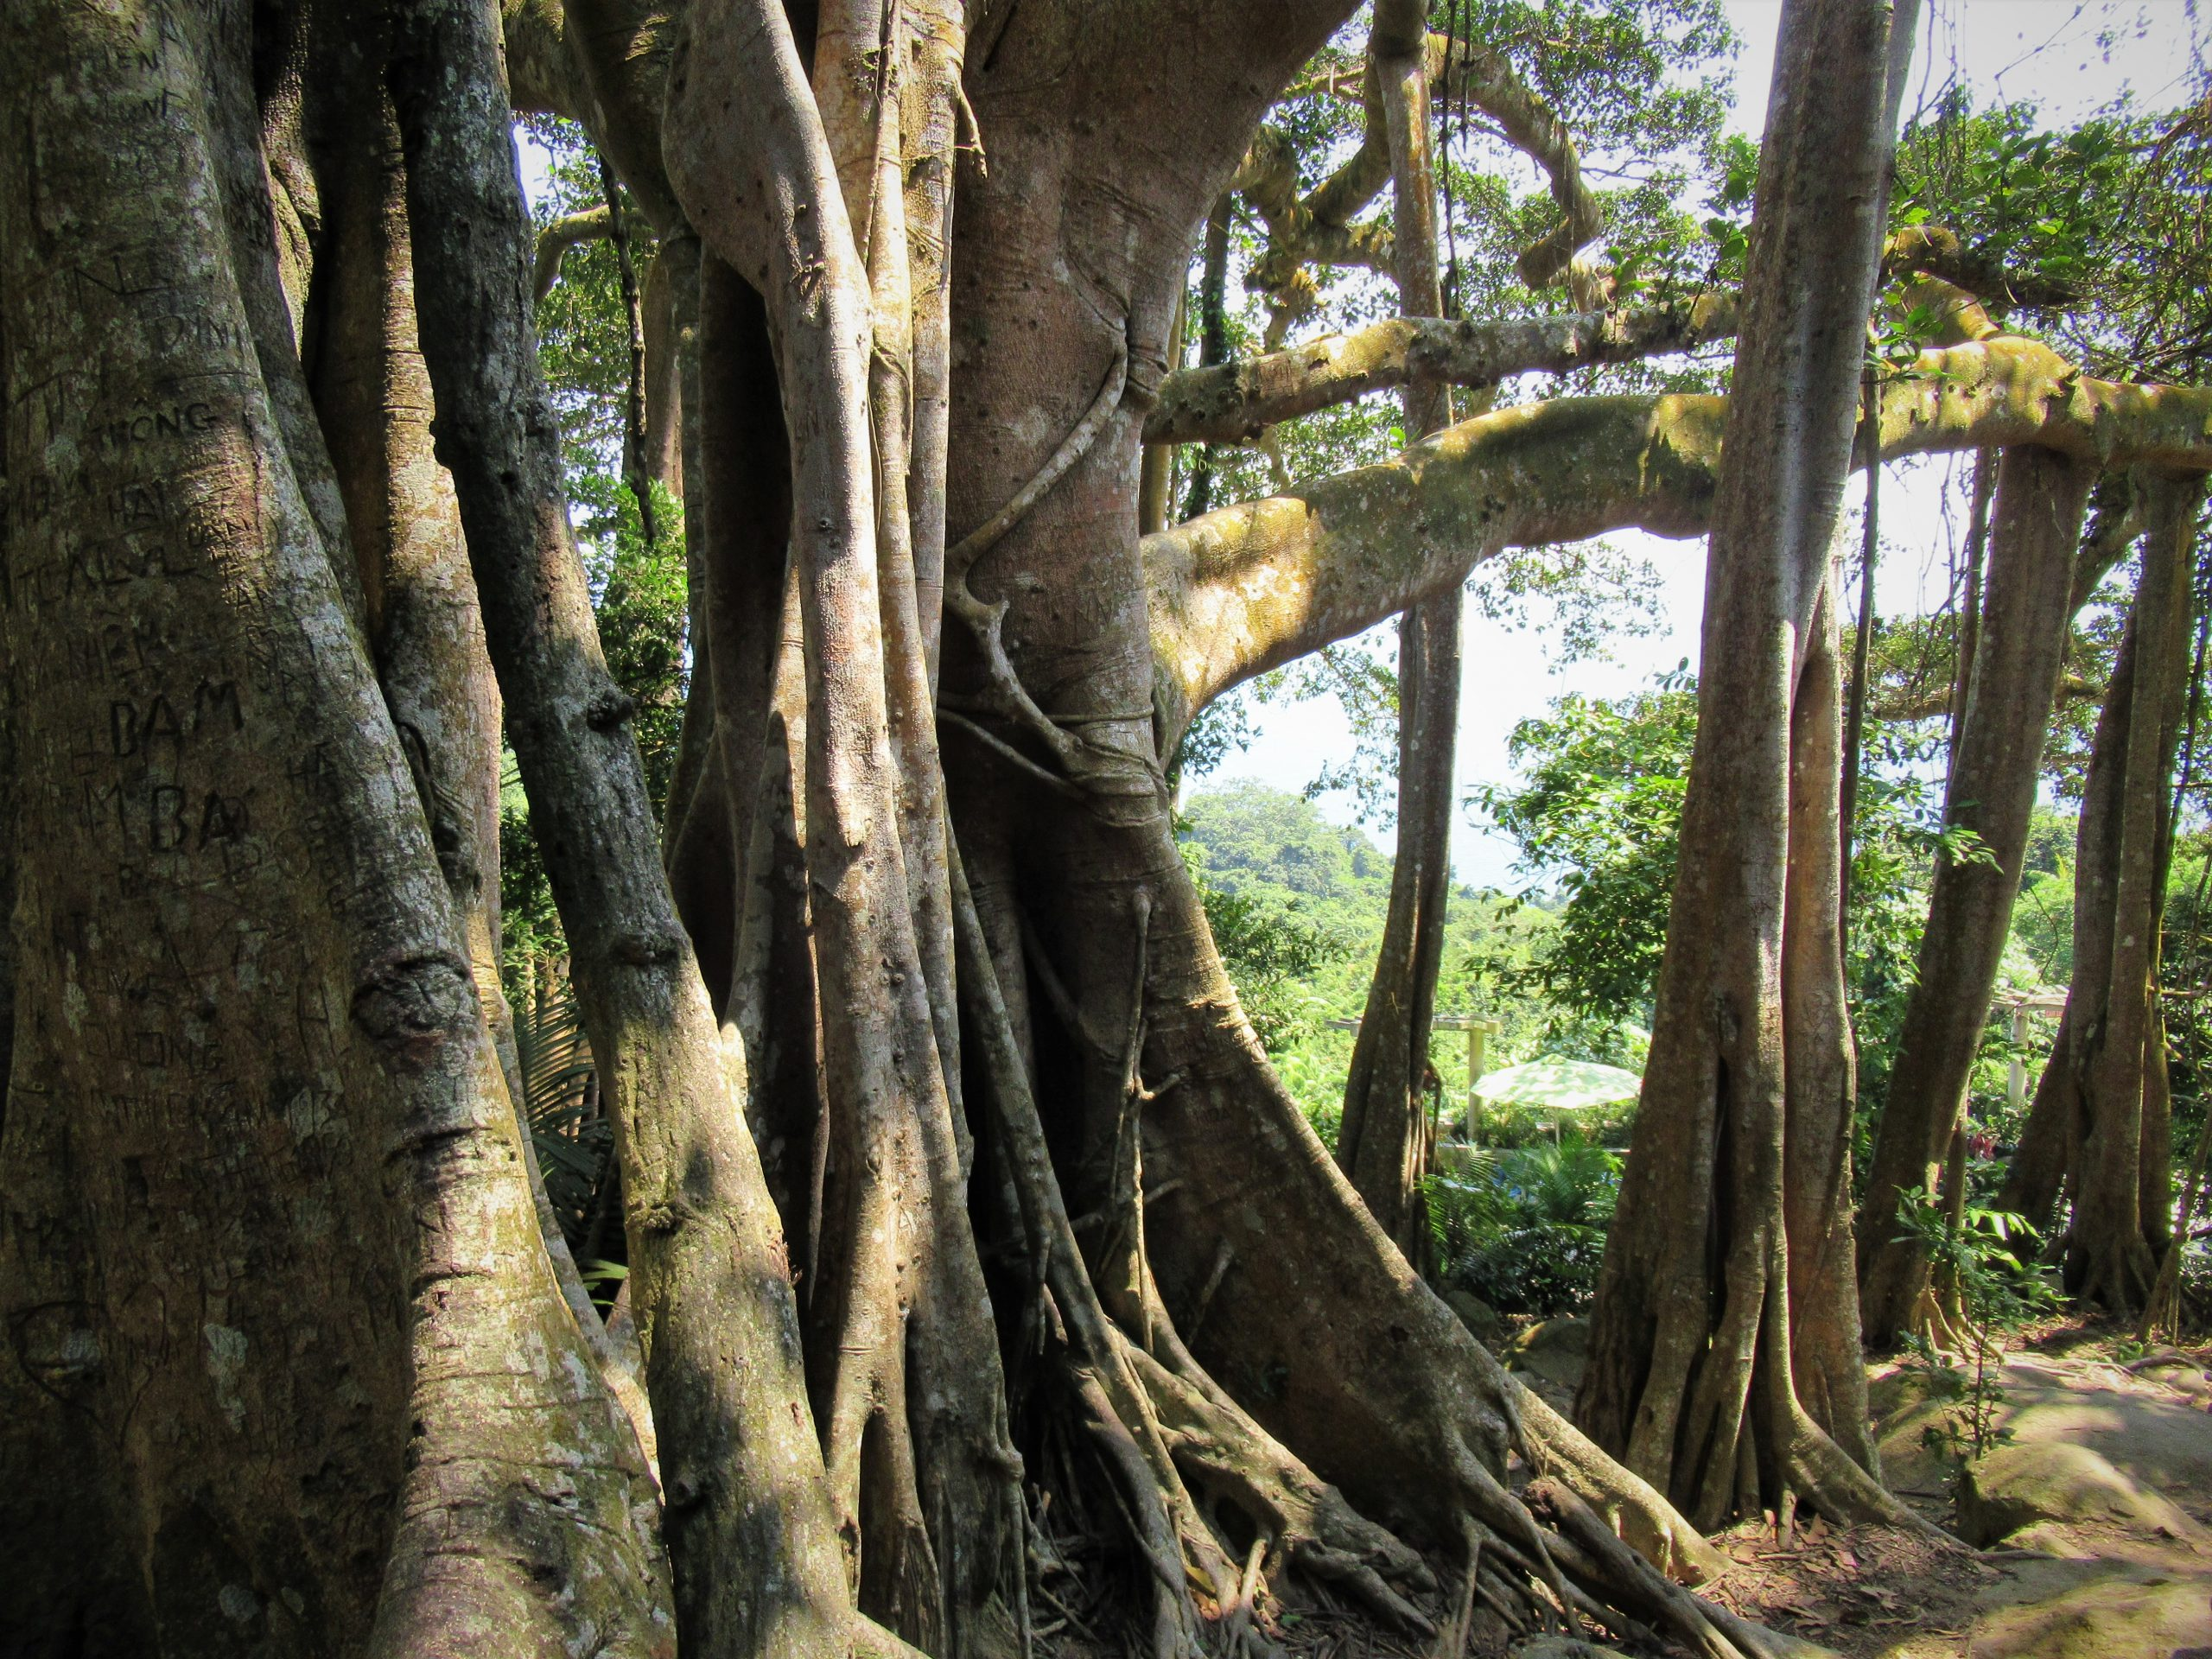 The splayed branches & secondary trunks of a banyan tree, Vietnam